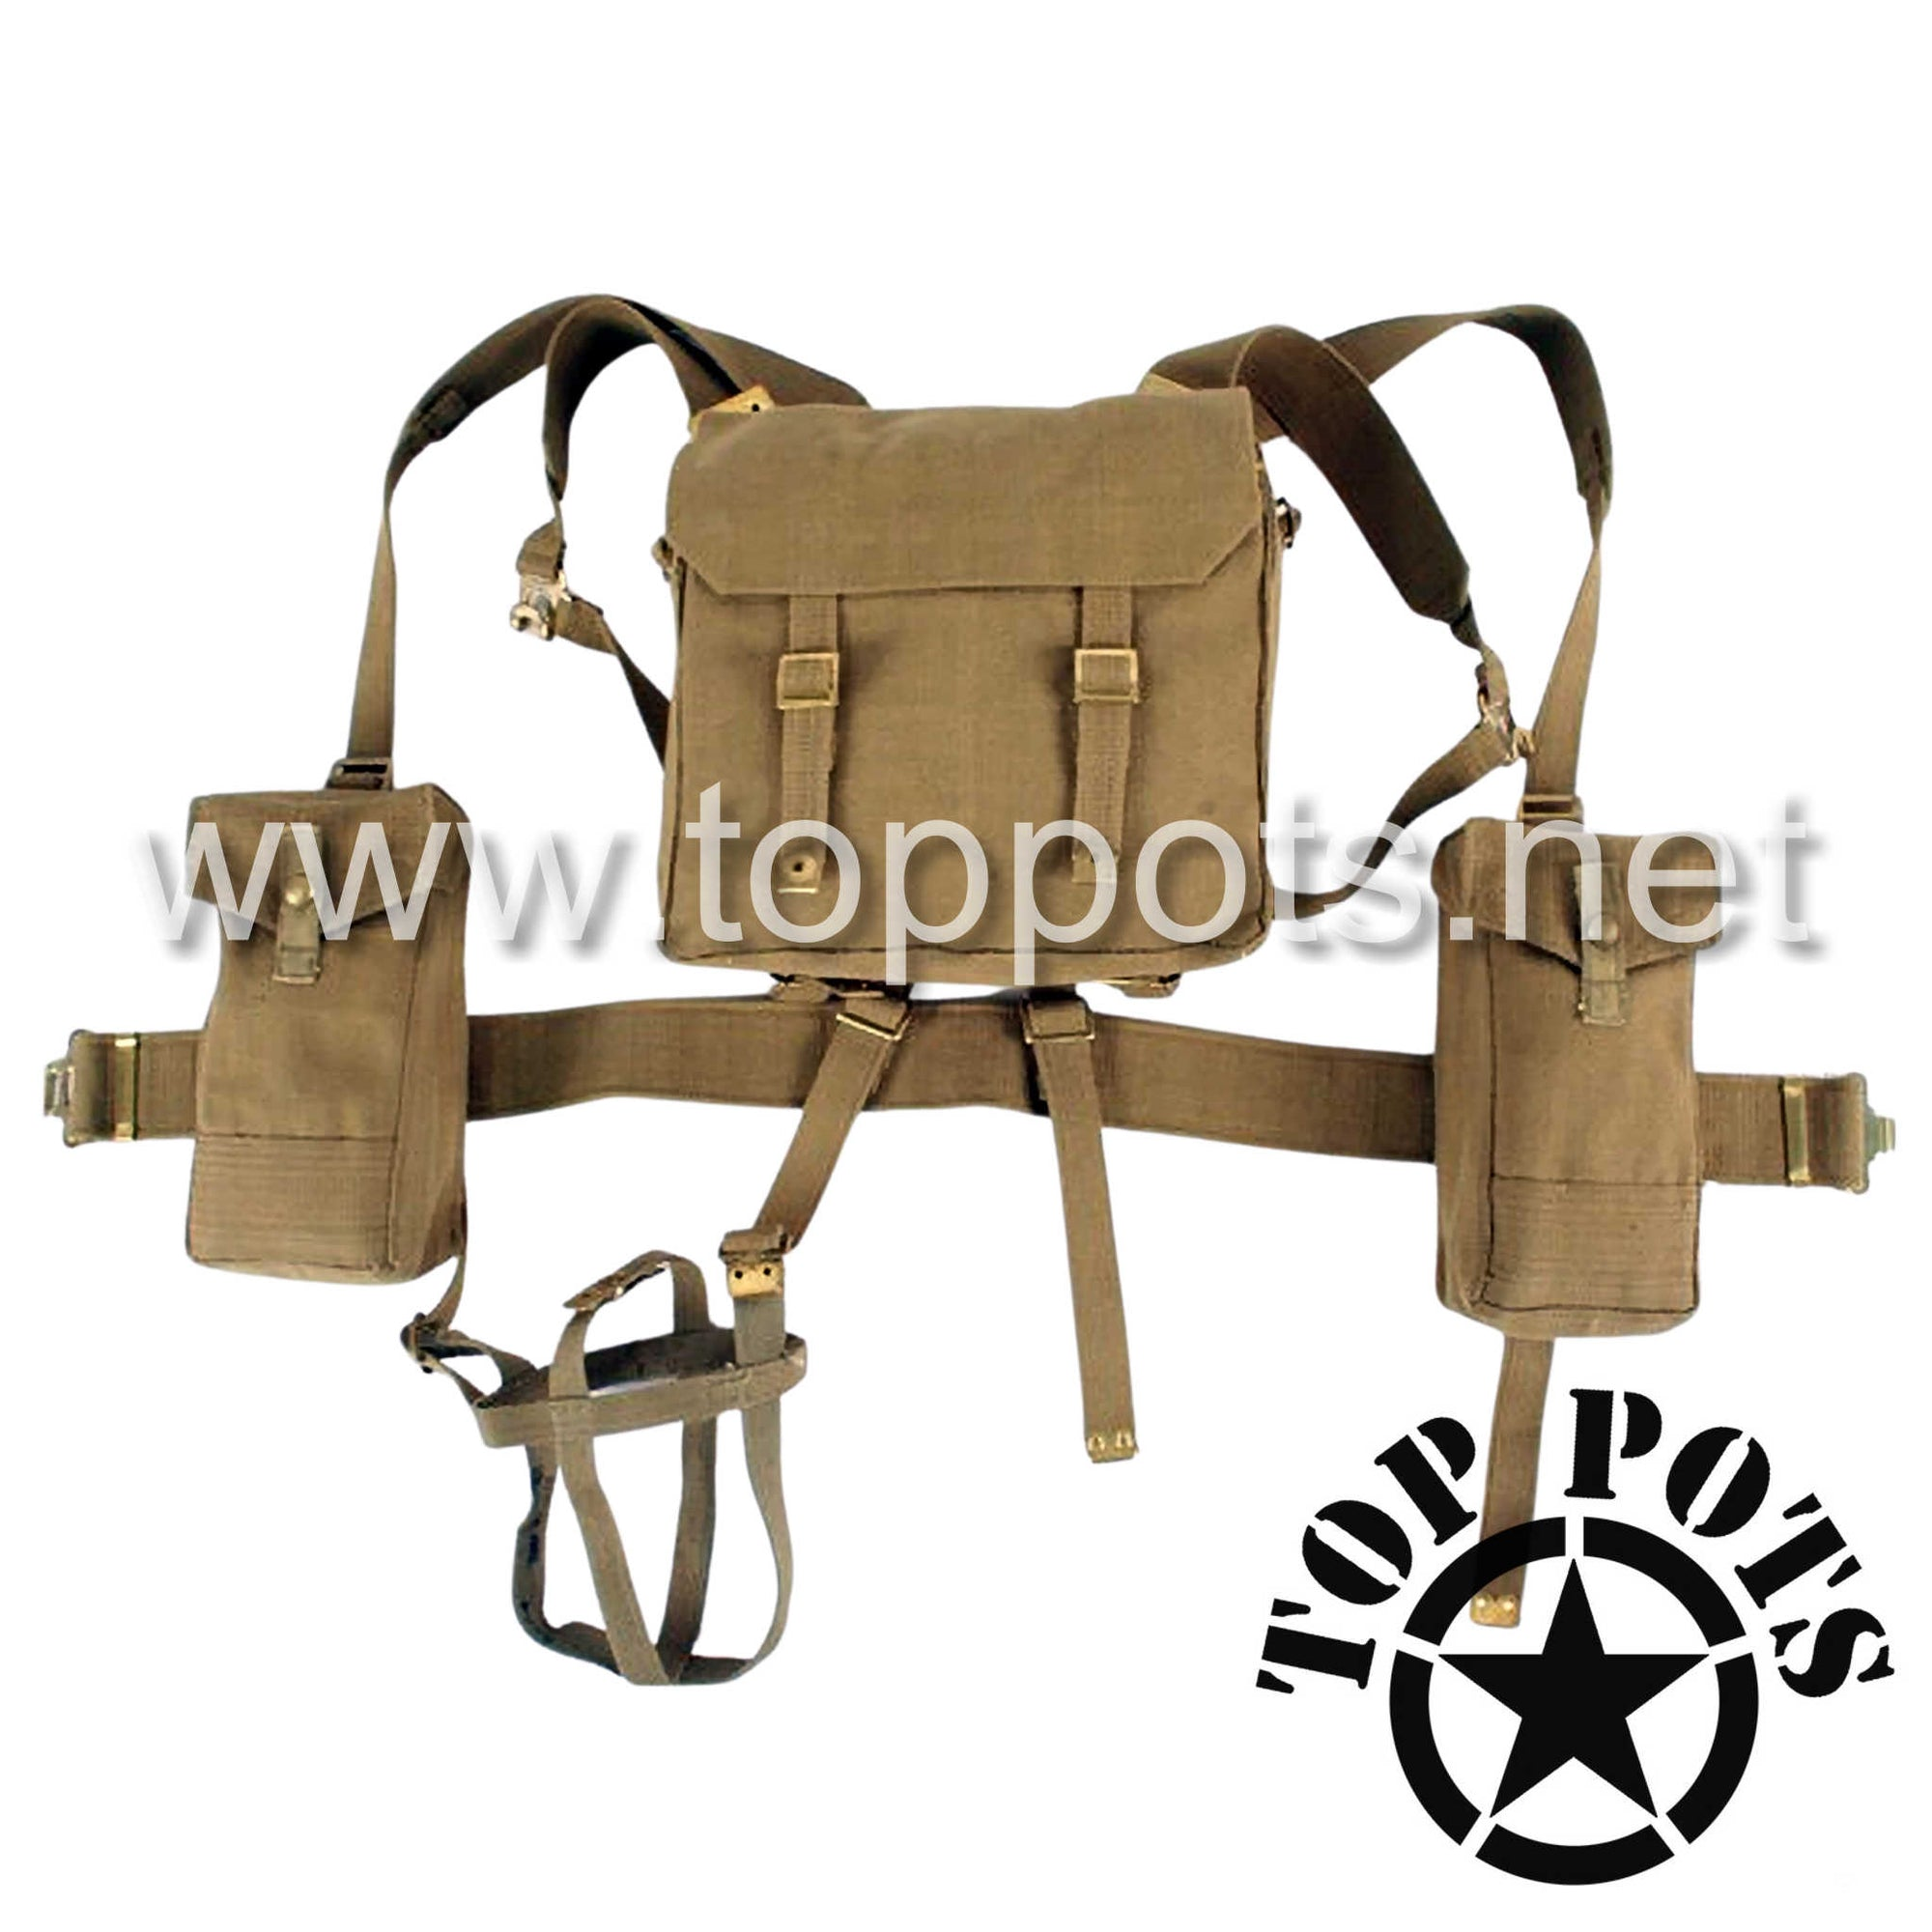 WWII Australian Army Reproduction P37 Canvas Battle Order Webbed Equipment Set – Khaki Tan Webbing